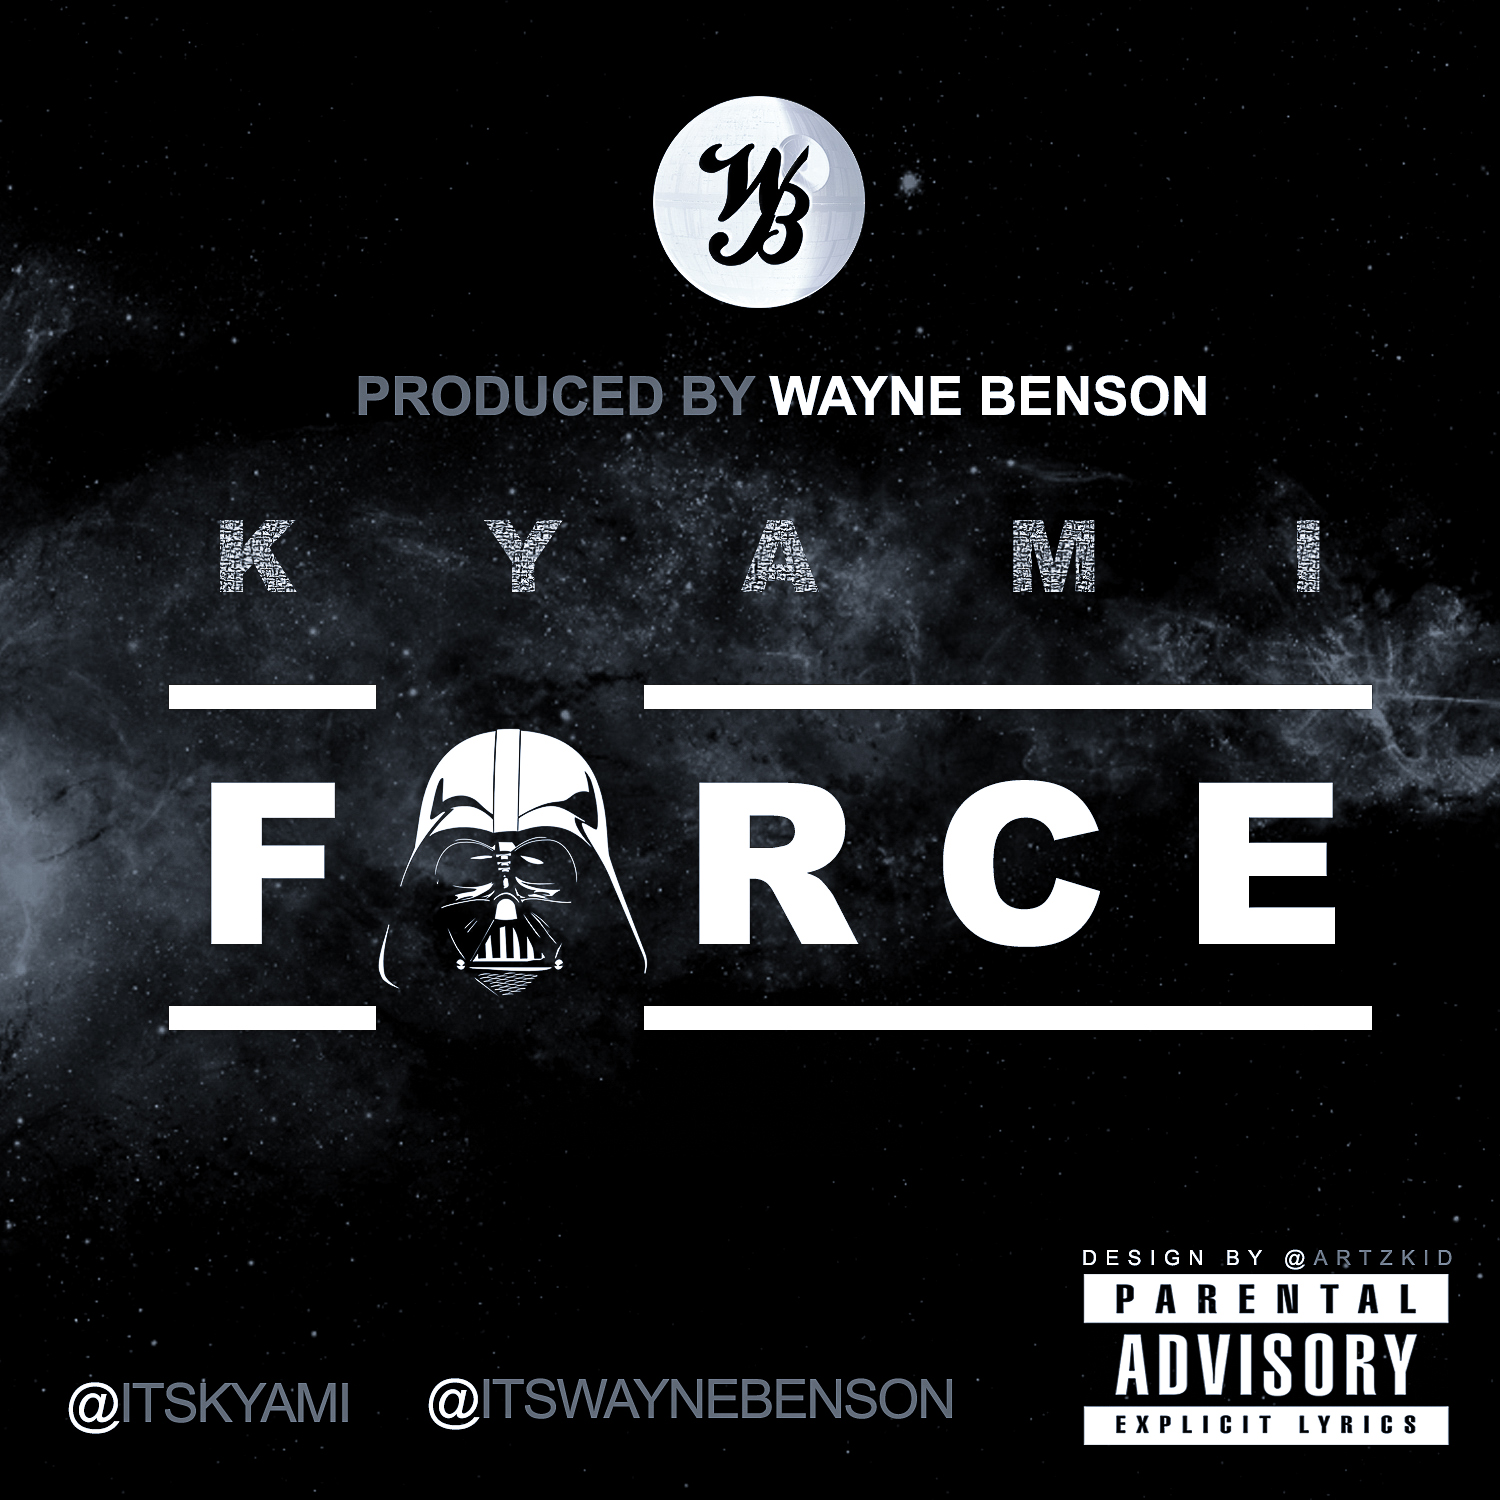 THE FORCE - WayneBenson DESIGN 2-1.jpg